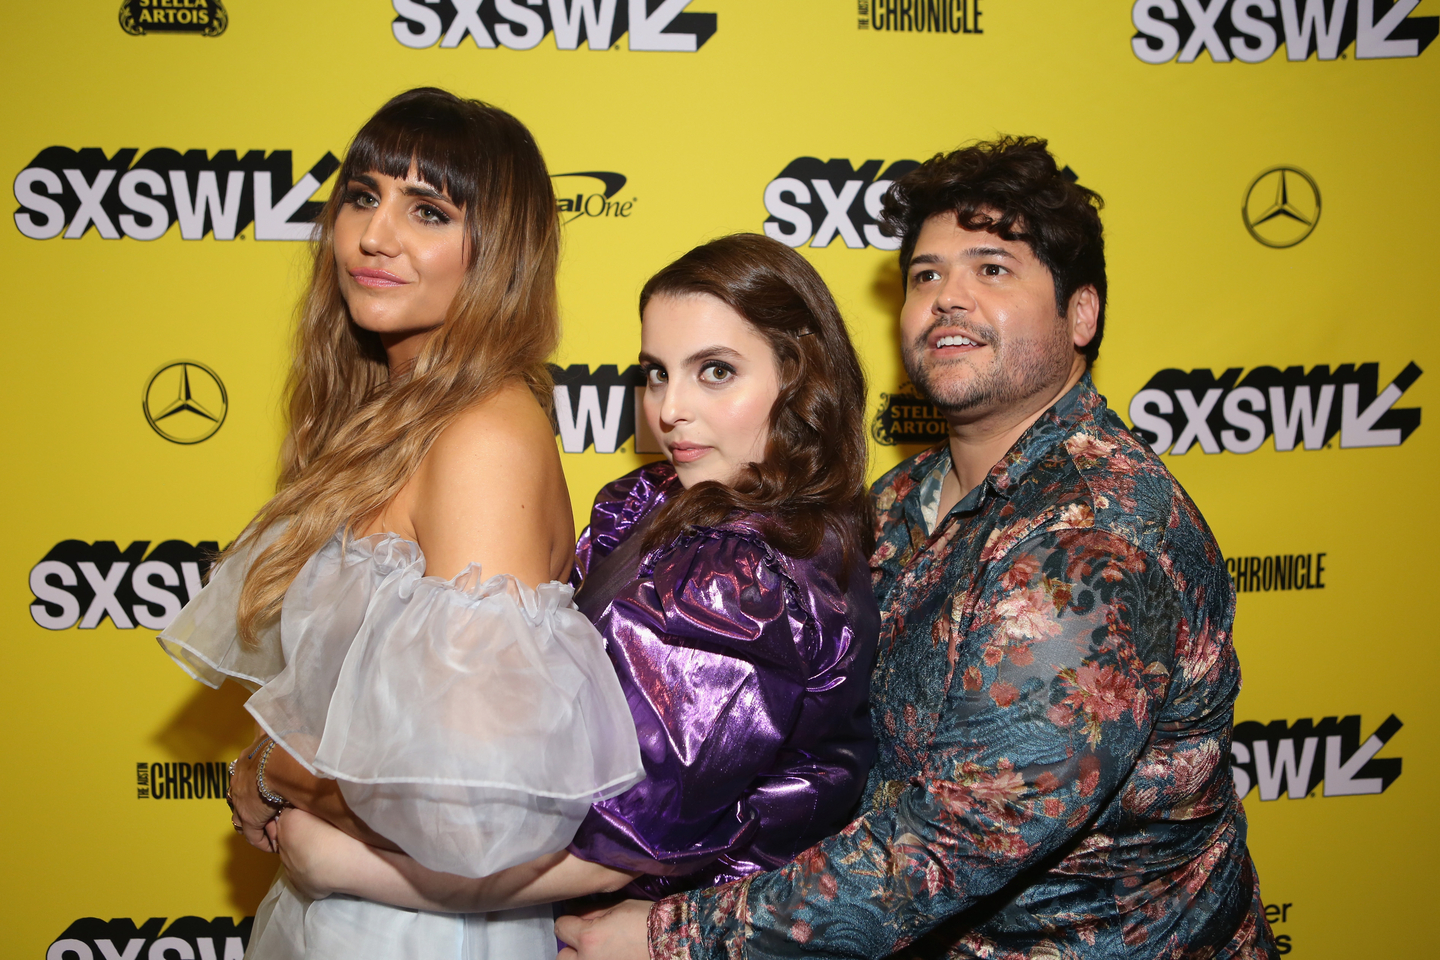 (L-R) Natasia Demetriou, Beanie Feldstein, and Harvey Guillen at the What We Do in the Shadows world premiere at the Paramount Theatre. Photo by Travis P Ball/Getty Images for SXSW